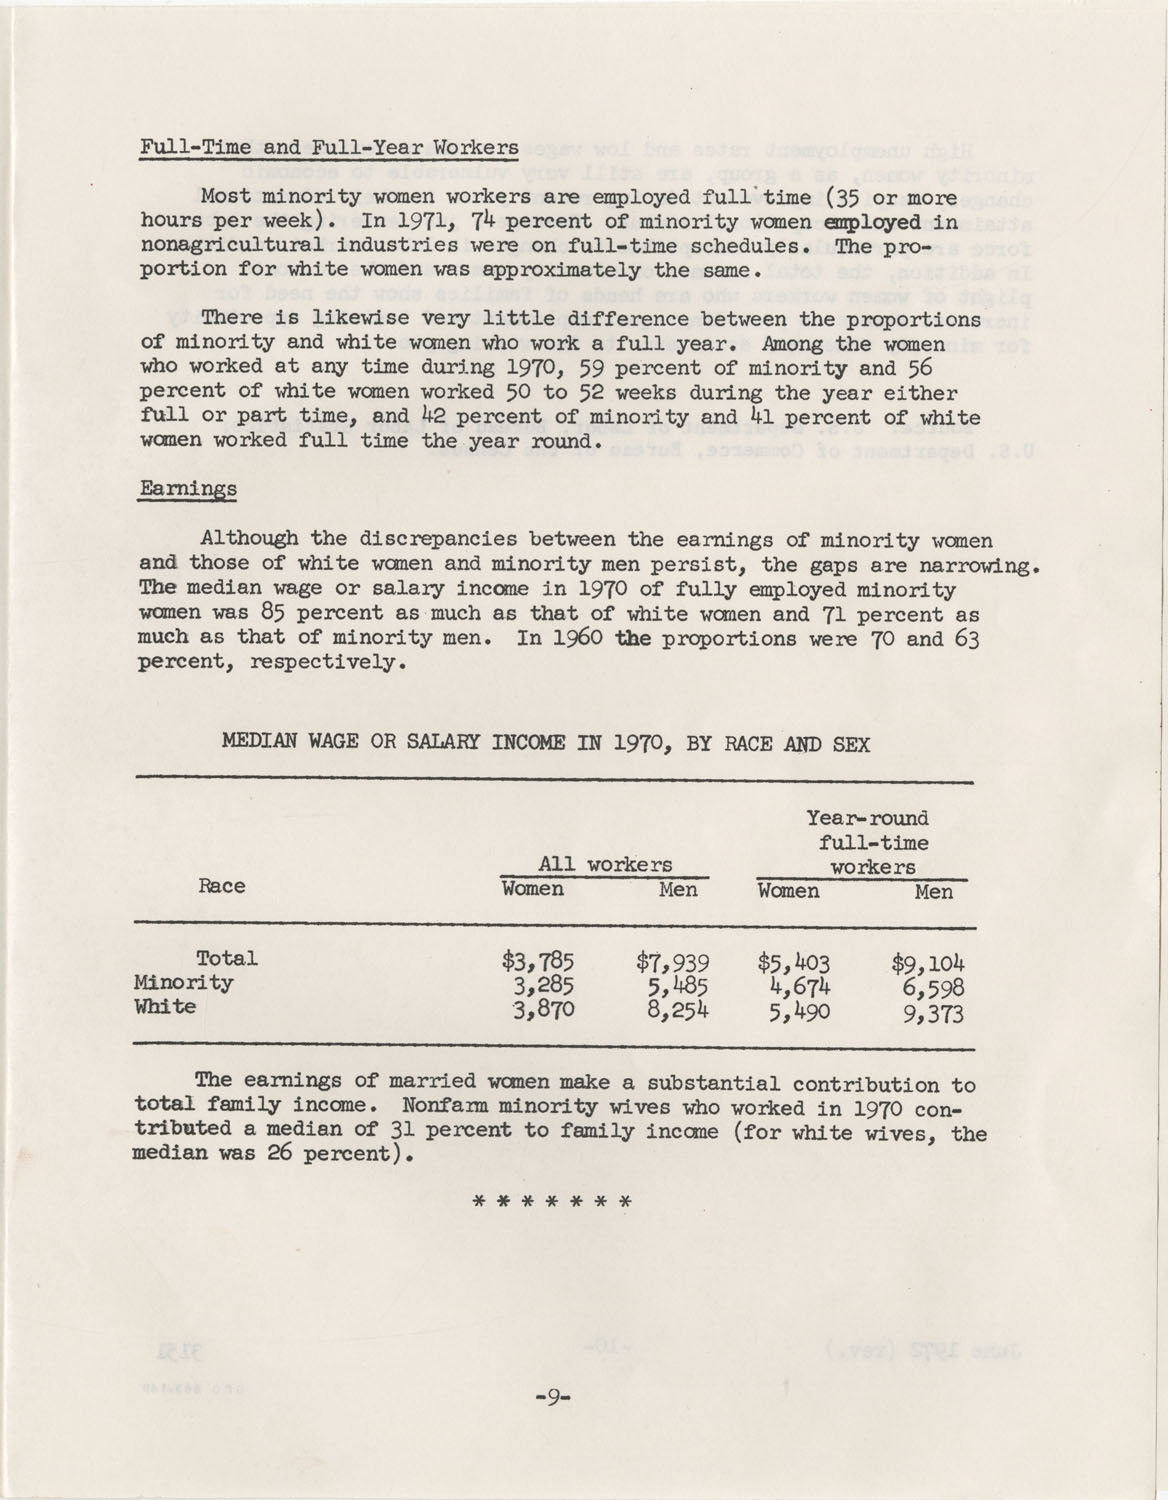 Facts on Women Workers of Minority Races, U.S. Department of Labor, June 1972, Page 9